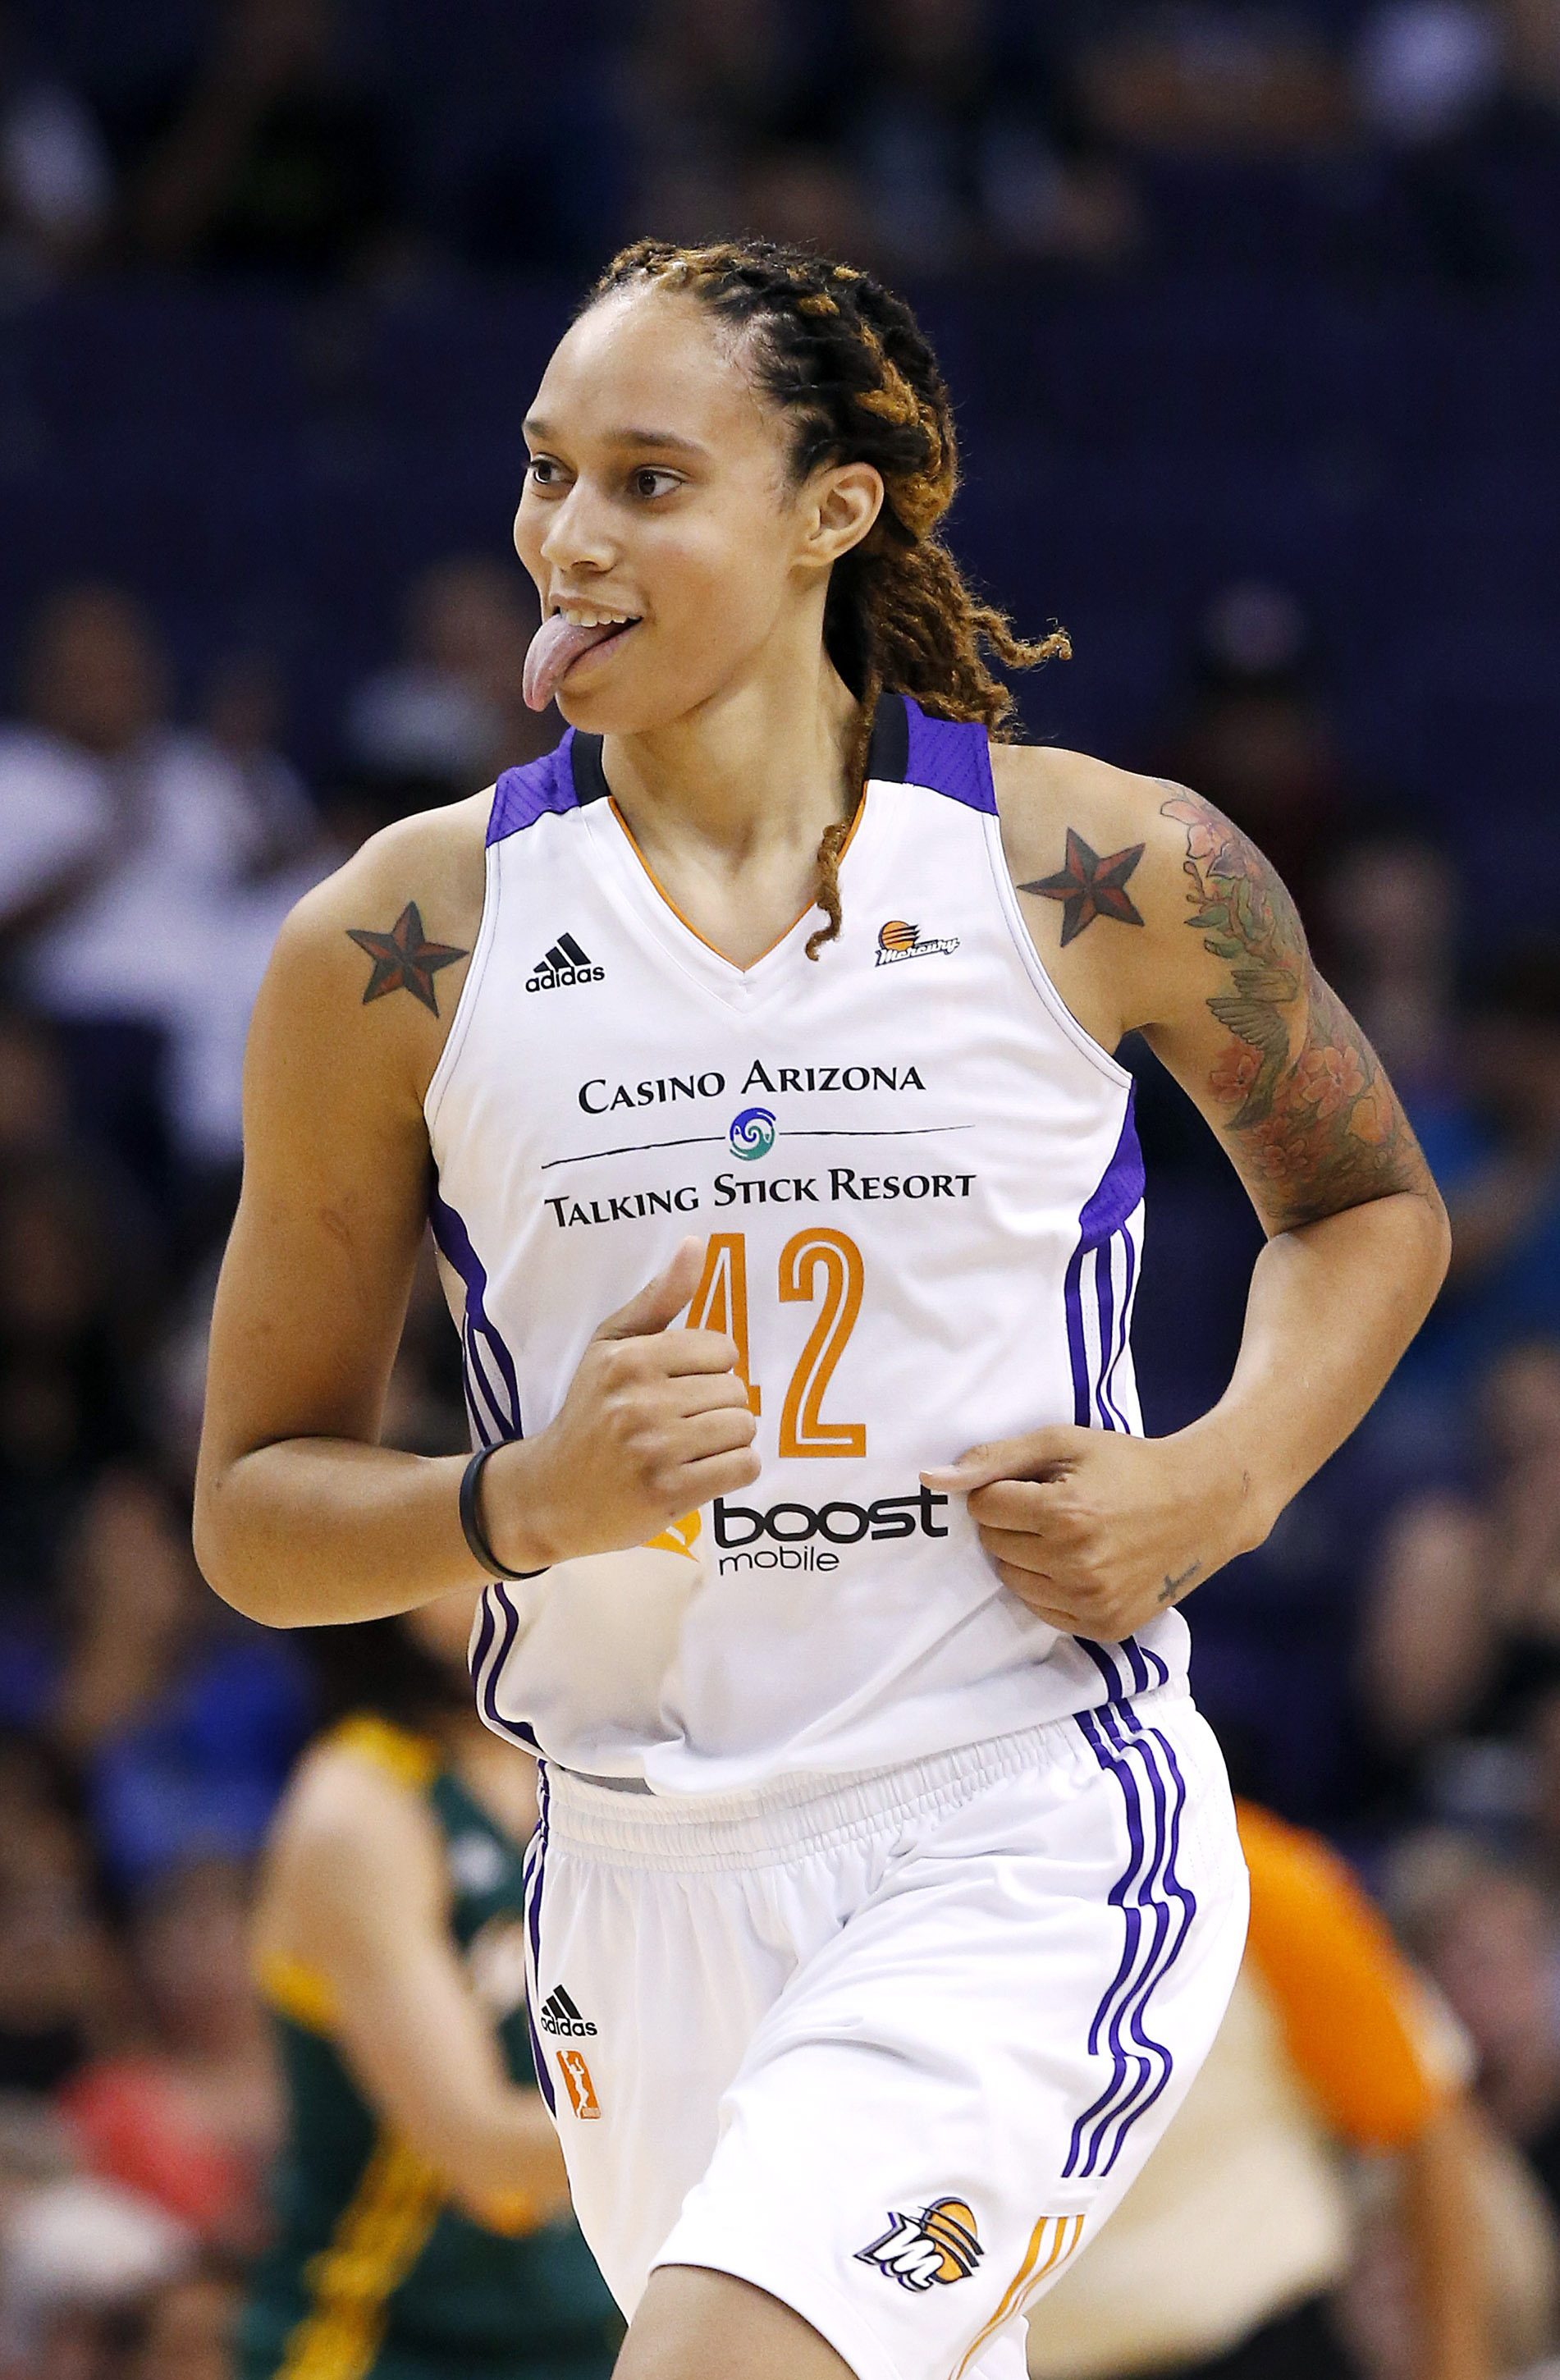 Phoenix Mercury's Brittney Griner sticks her tongue out after scoring a basket against the Seattle Storm during the first half of a WNBA basketball game on Tuesday, June 3, 2014, in Phoenix